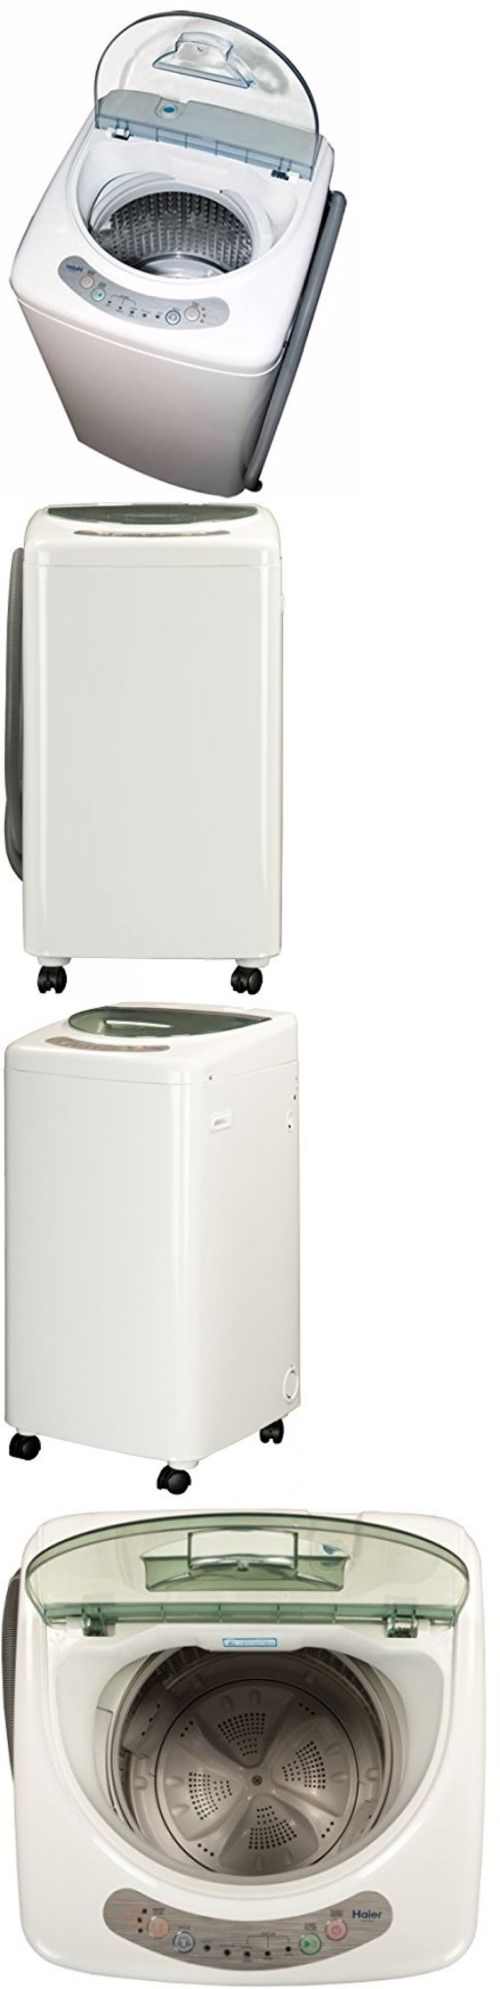 Washing Machines 71256: Portable Washers For Apartments Compact ...